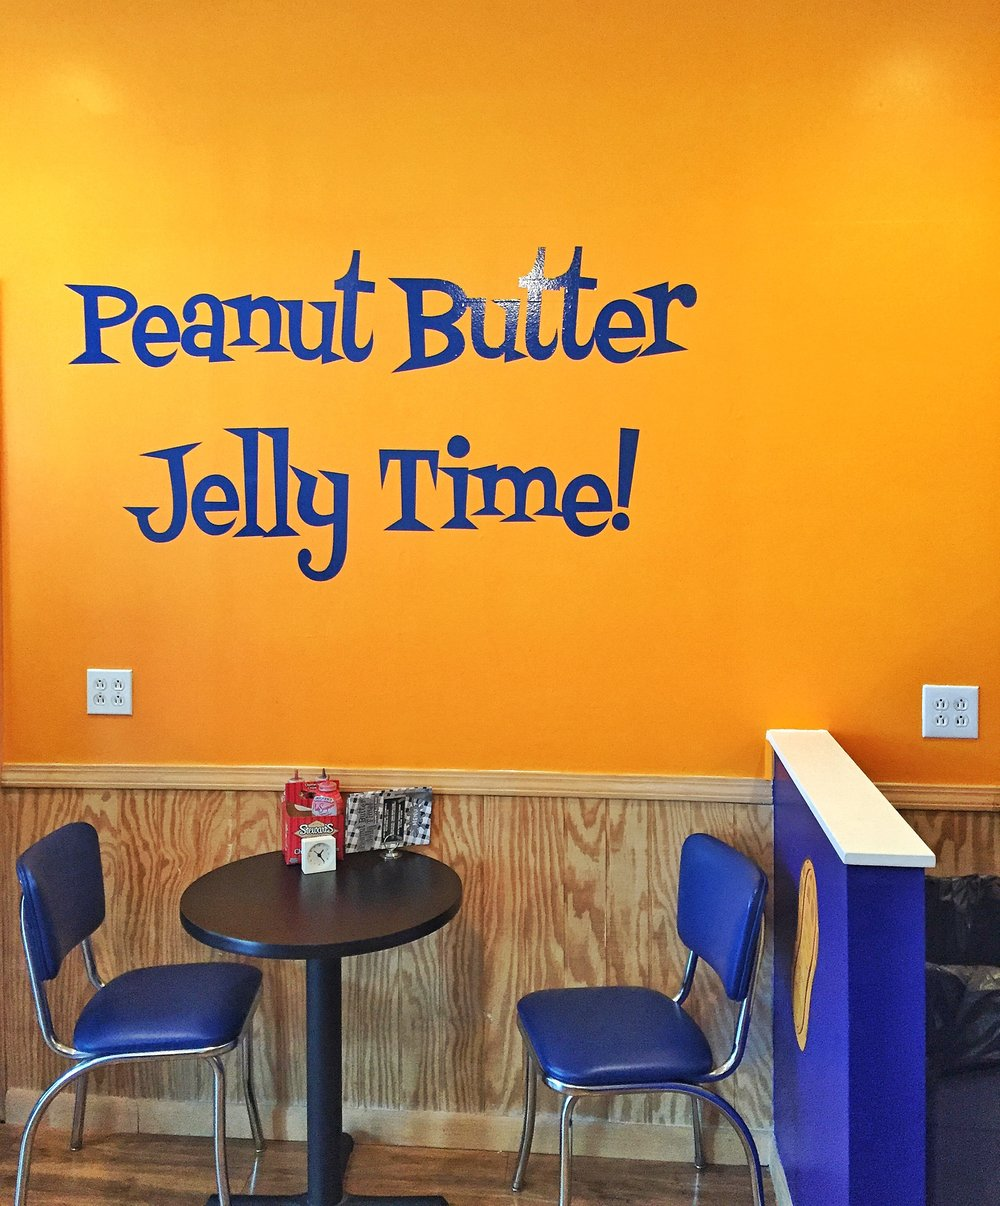 Peanut Butter Jelly Time.JPG